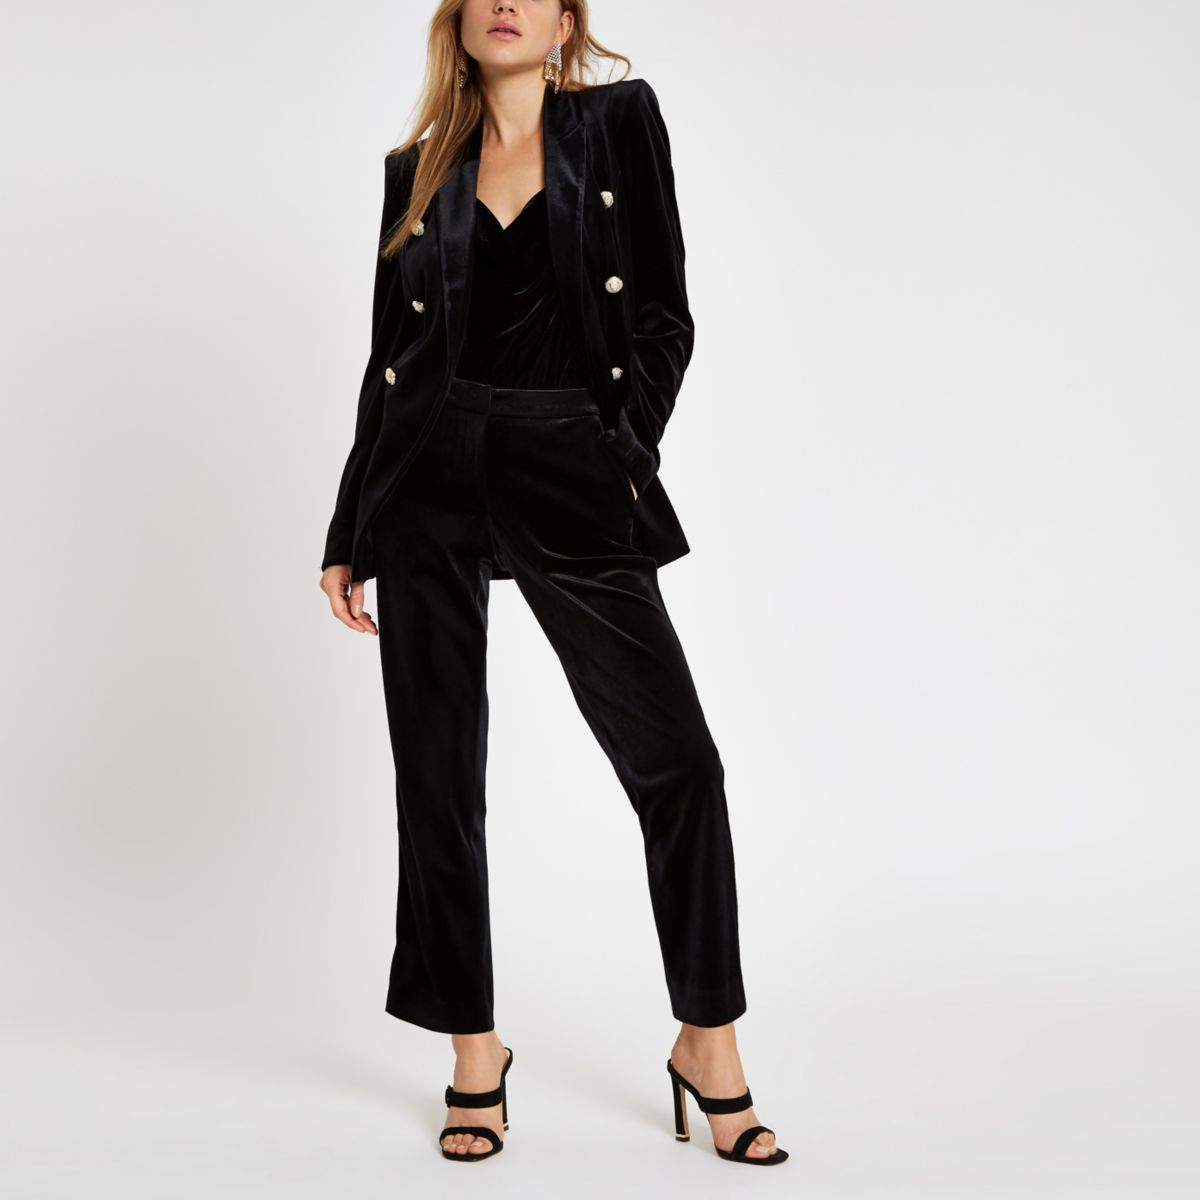 Black velvet cigarette pants